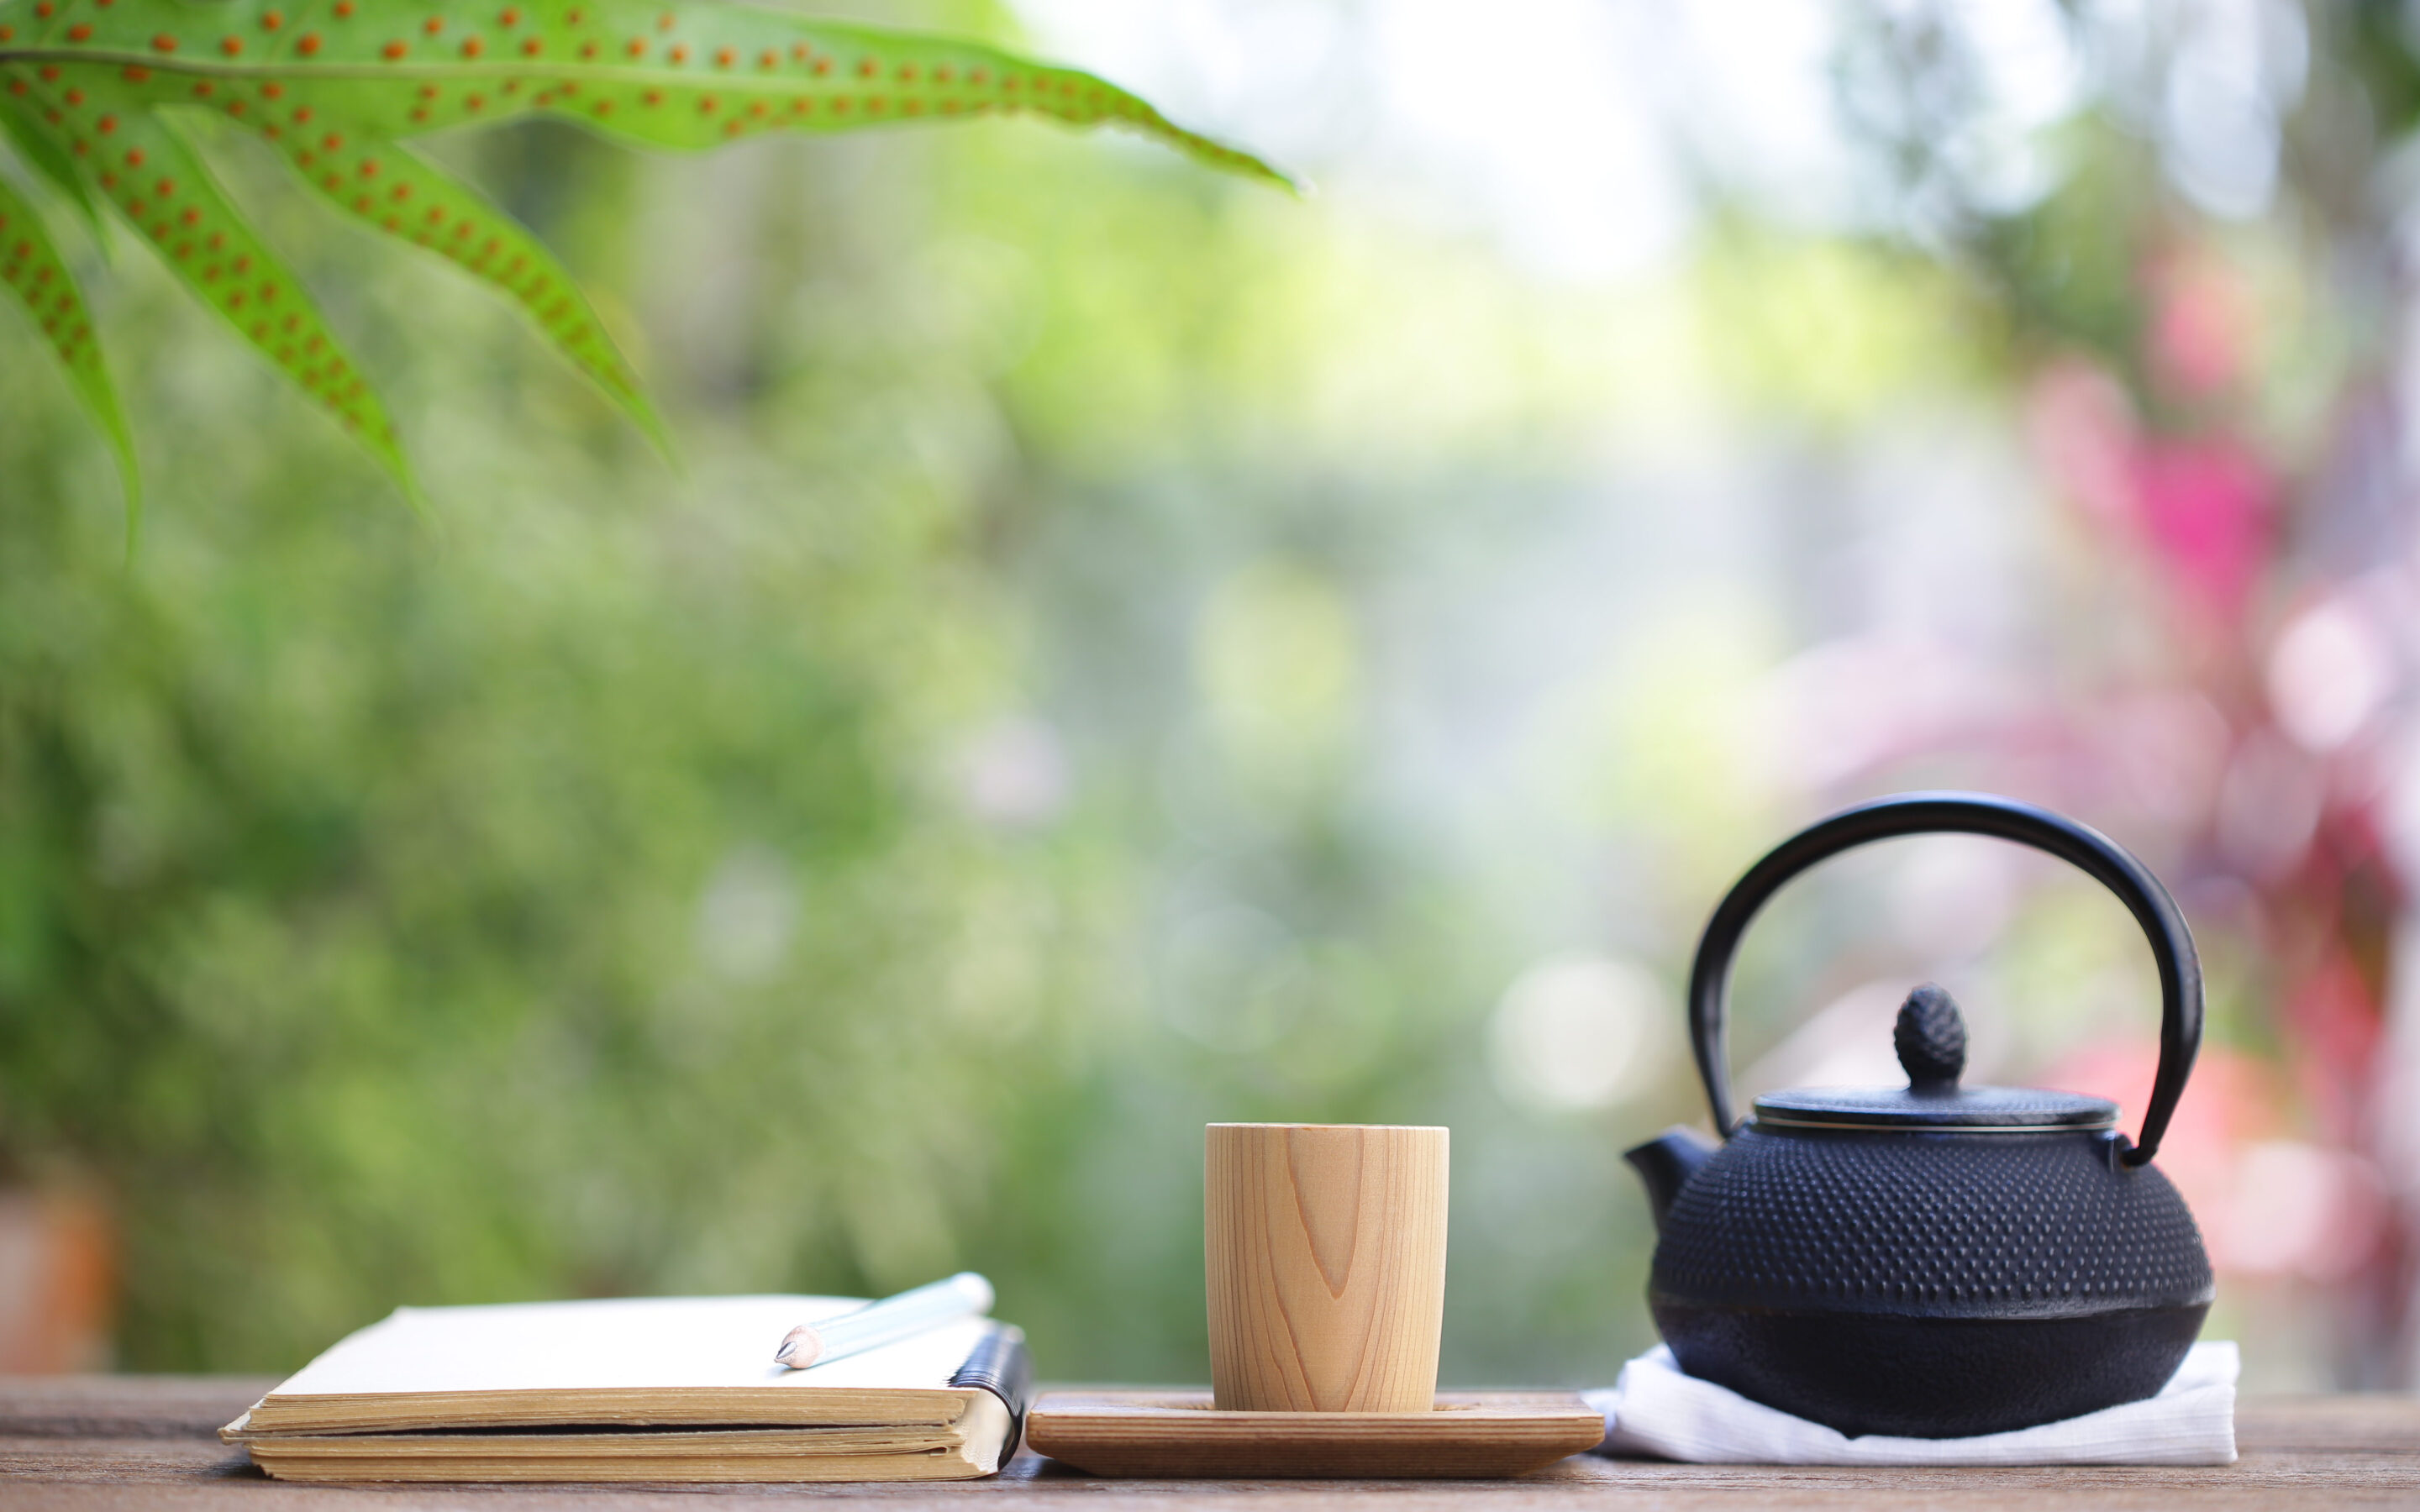 Teapot, cup and journal outside representing quiet time for self